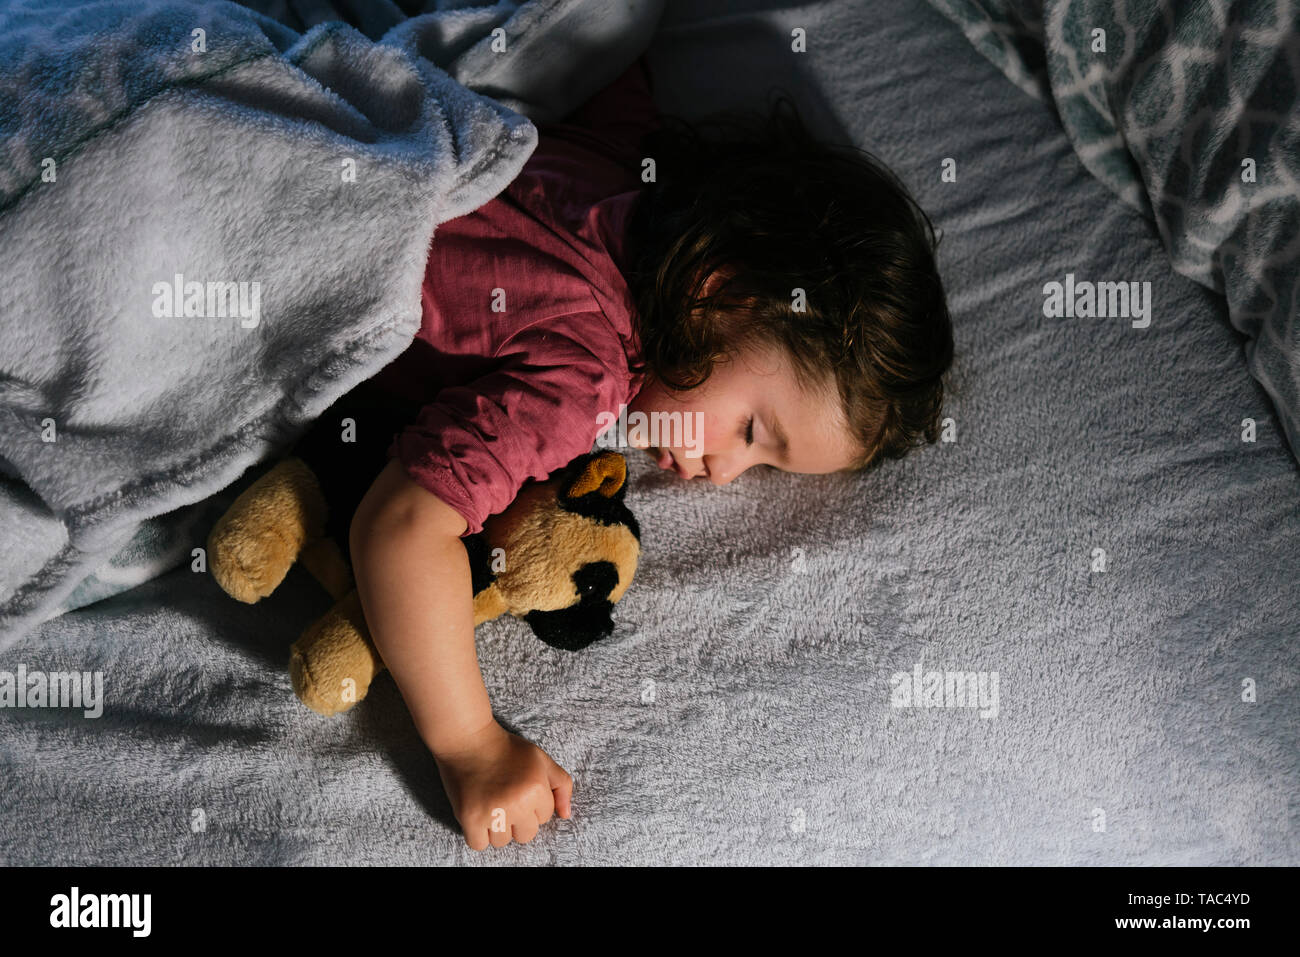 Toddler girl sleeping in bed with a soft toy dog - Stock Image